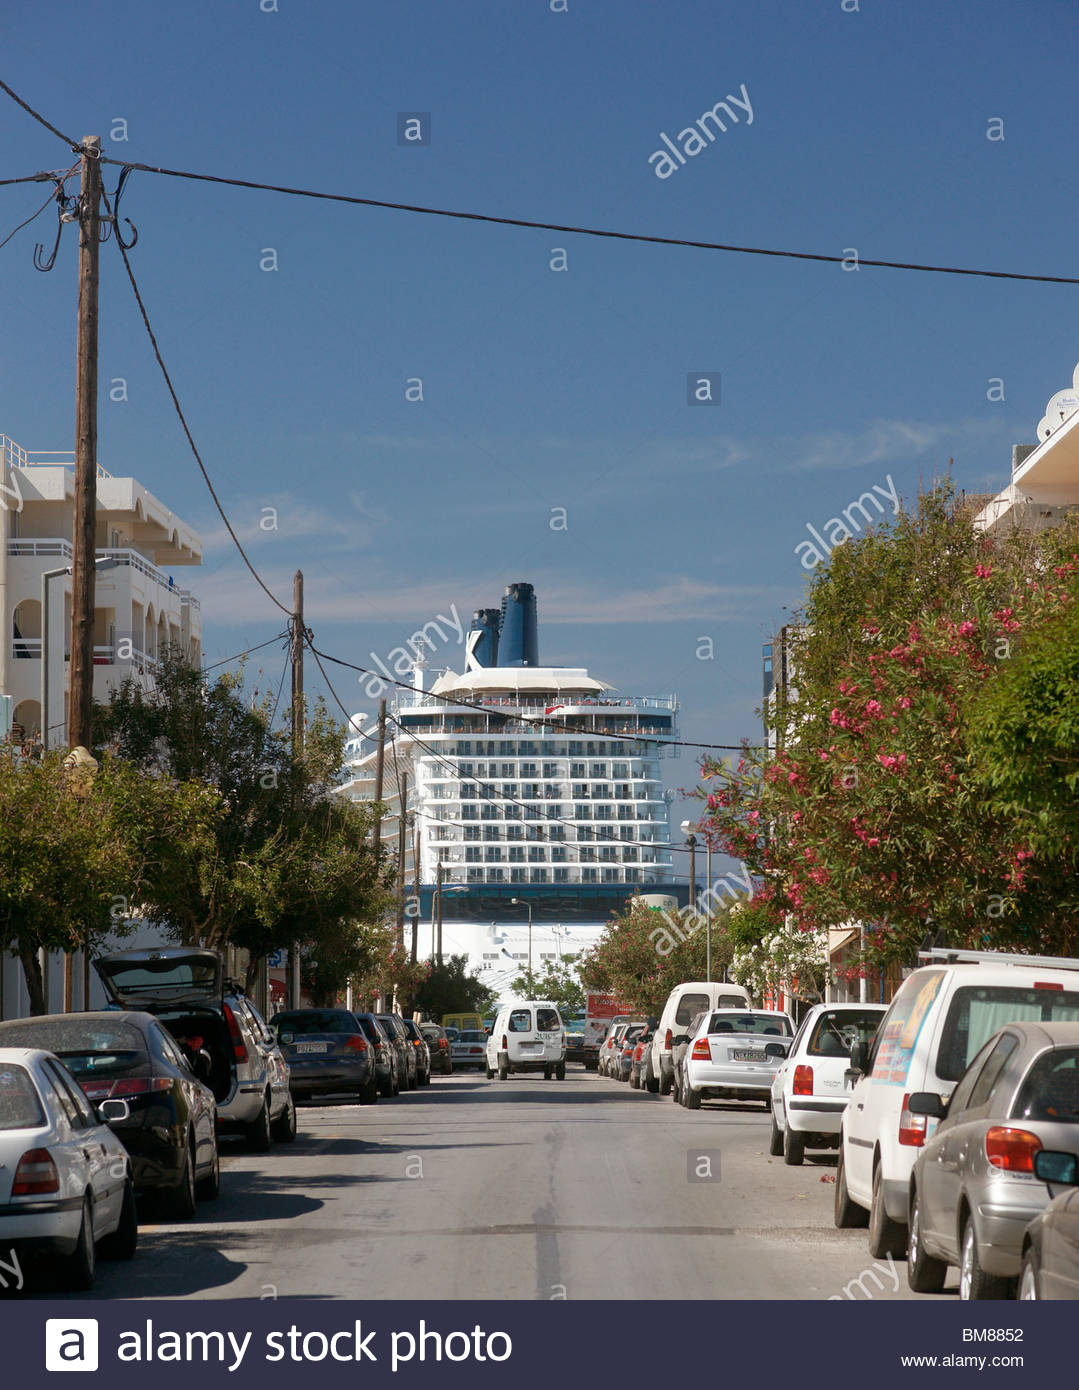 CRUISE SHIP parked in Greece - Stock Image